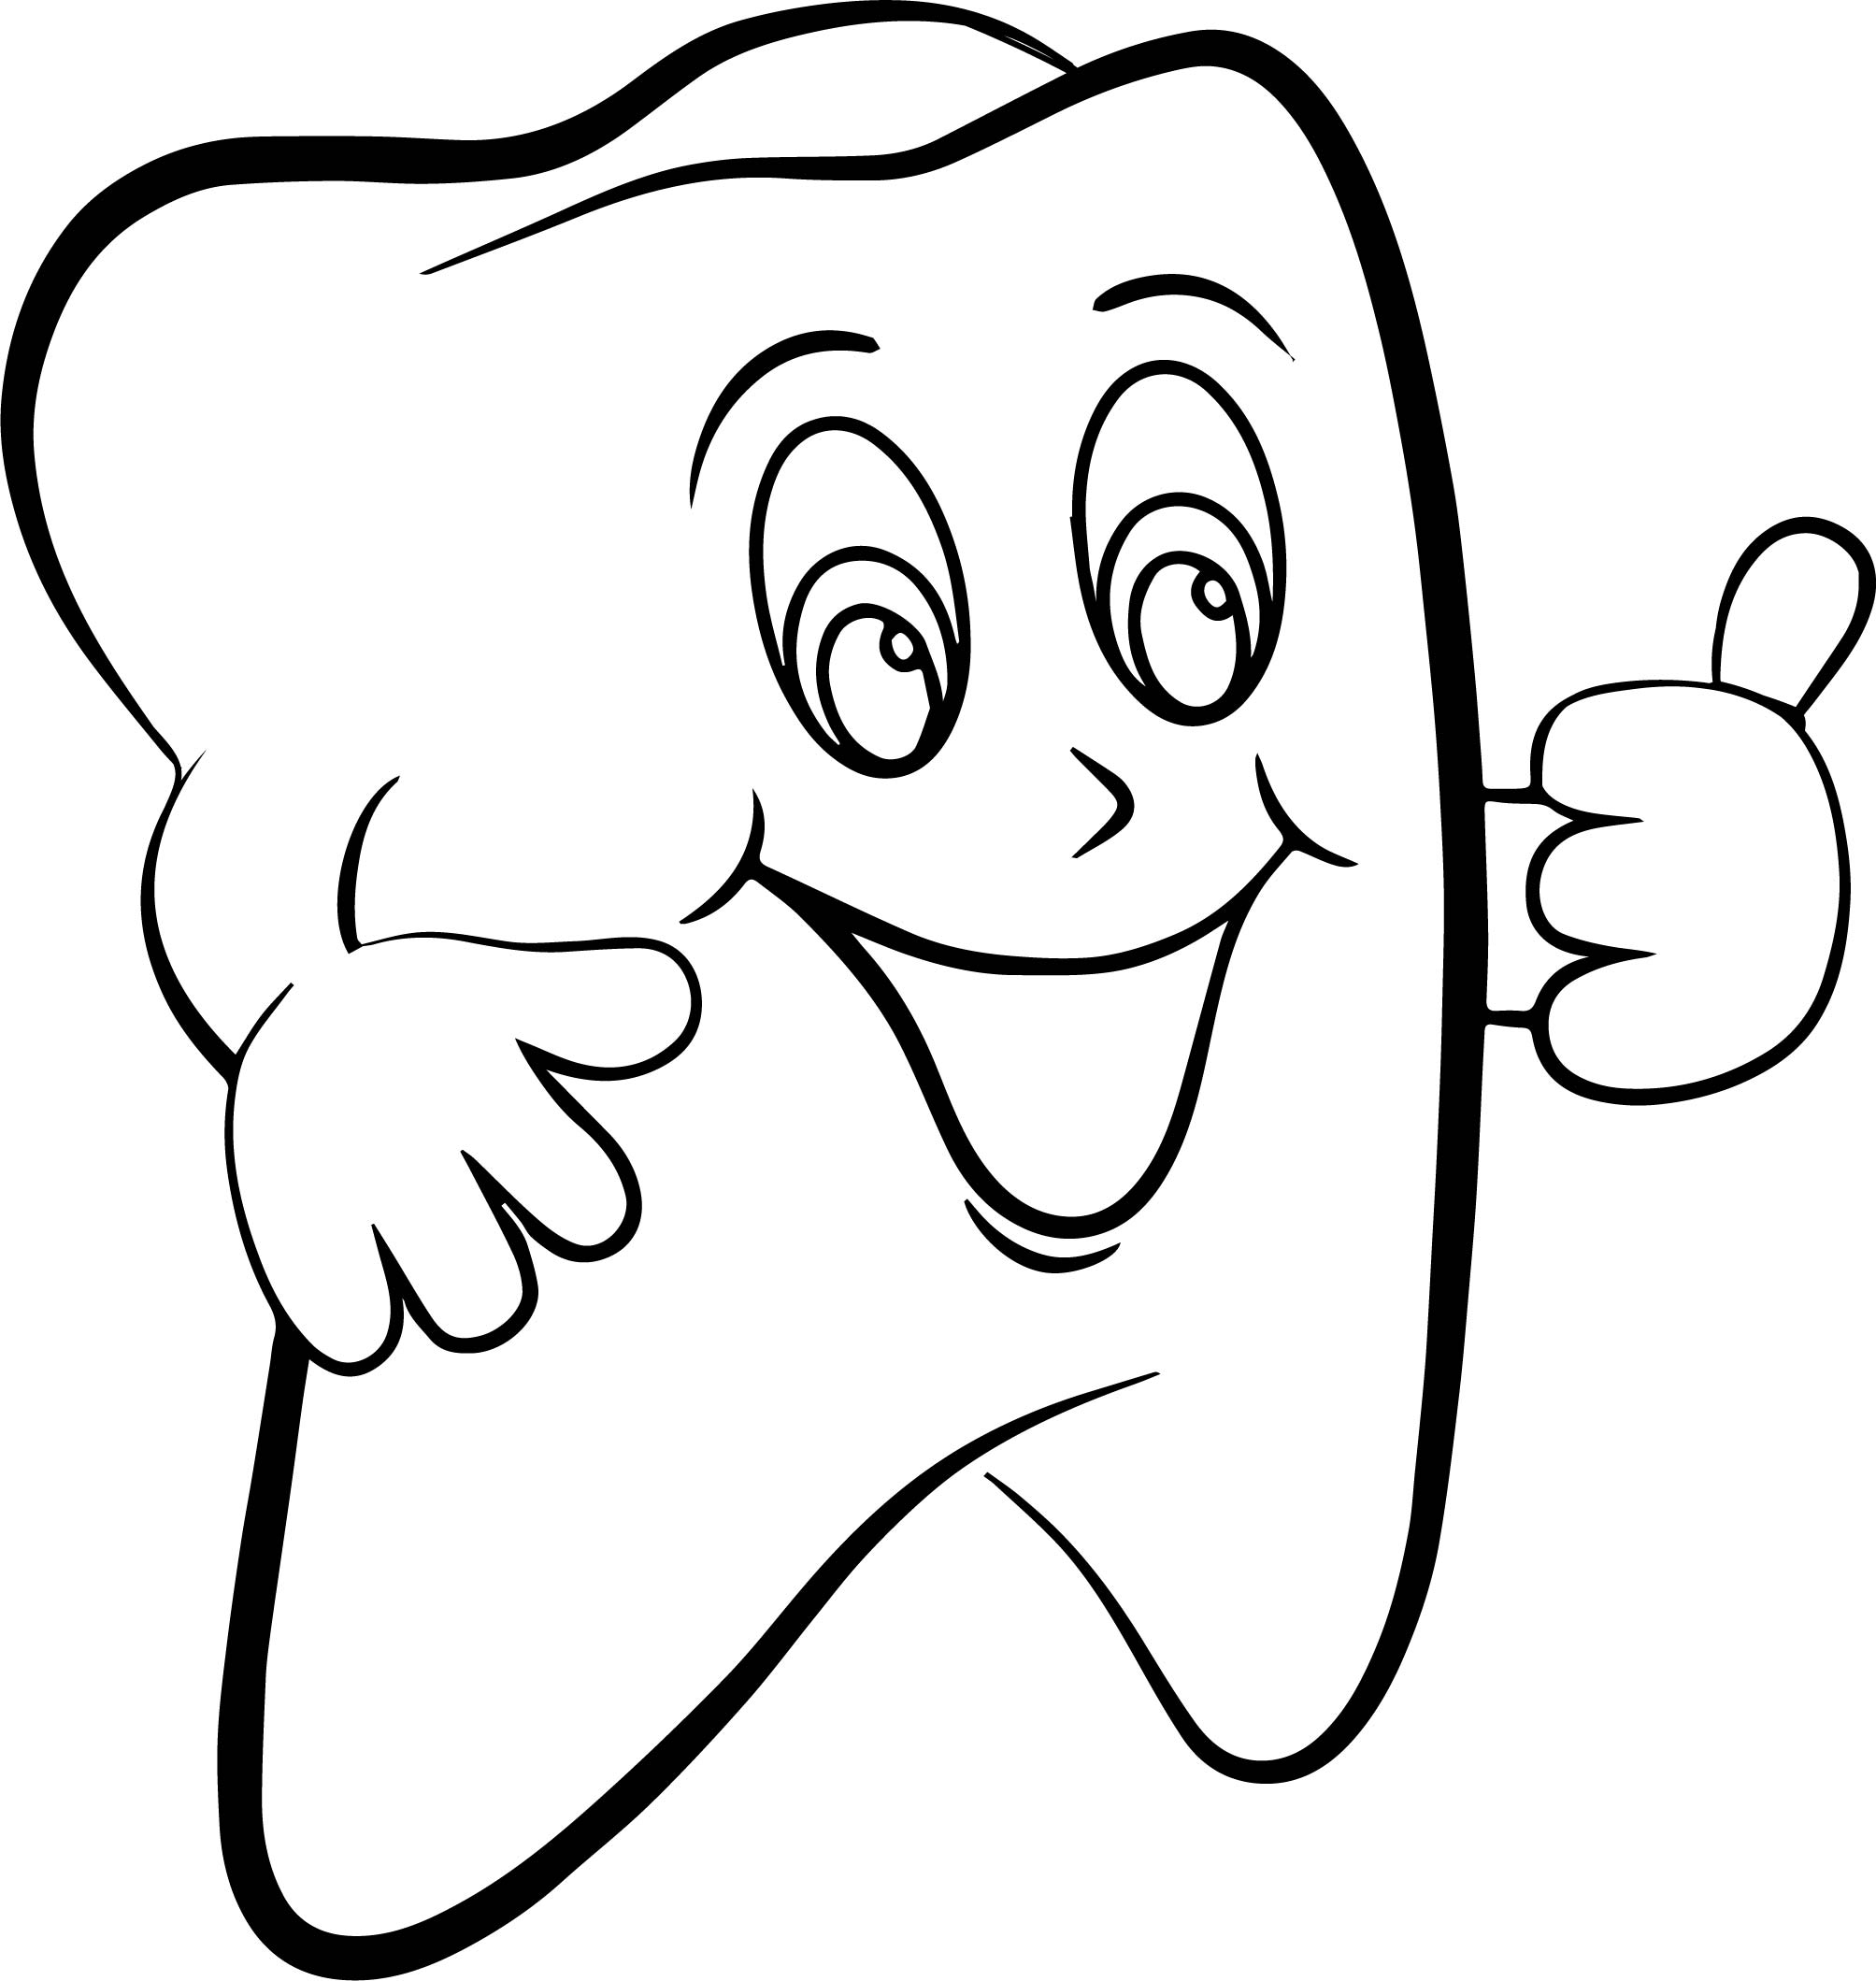 Dental Health Coloring Pages at GetDrawings.com | Free for ...